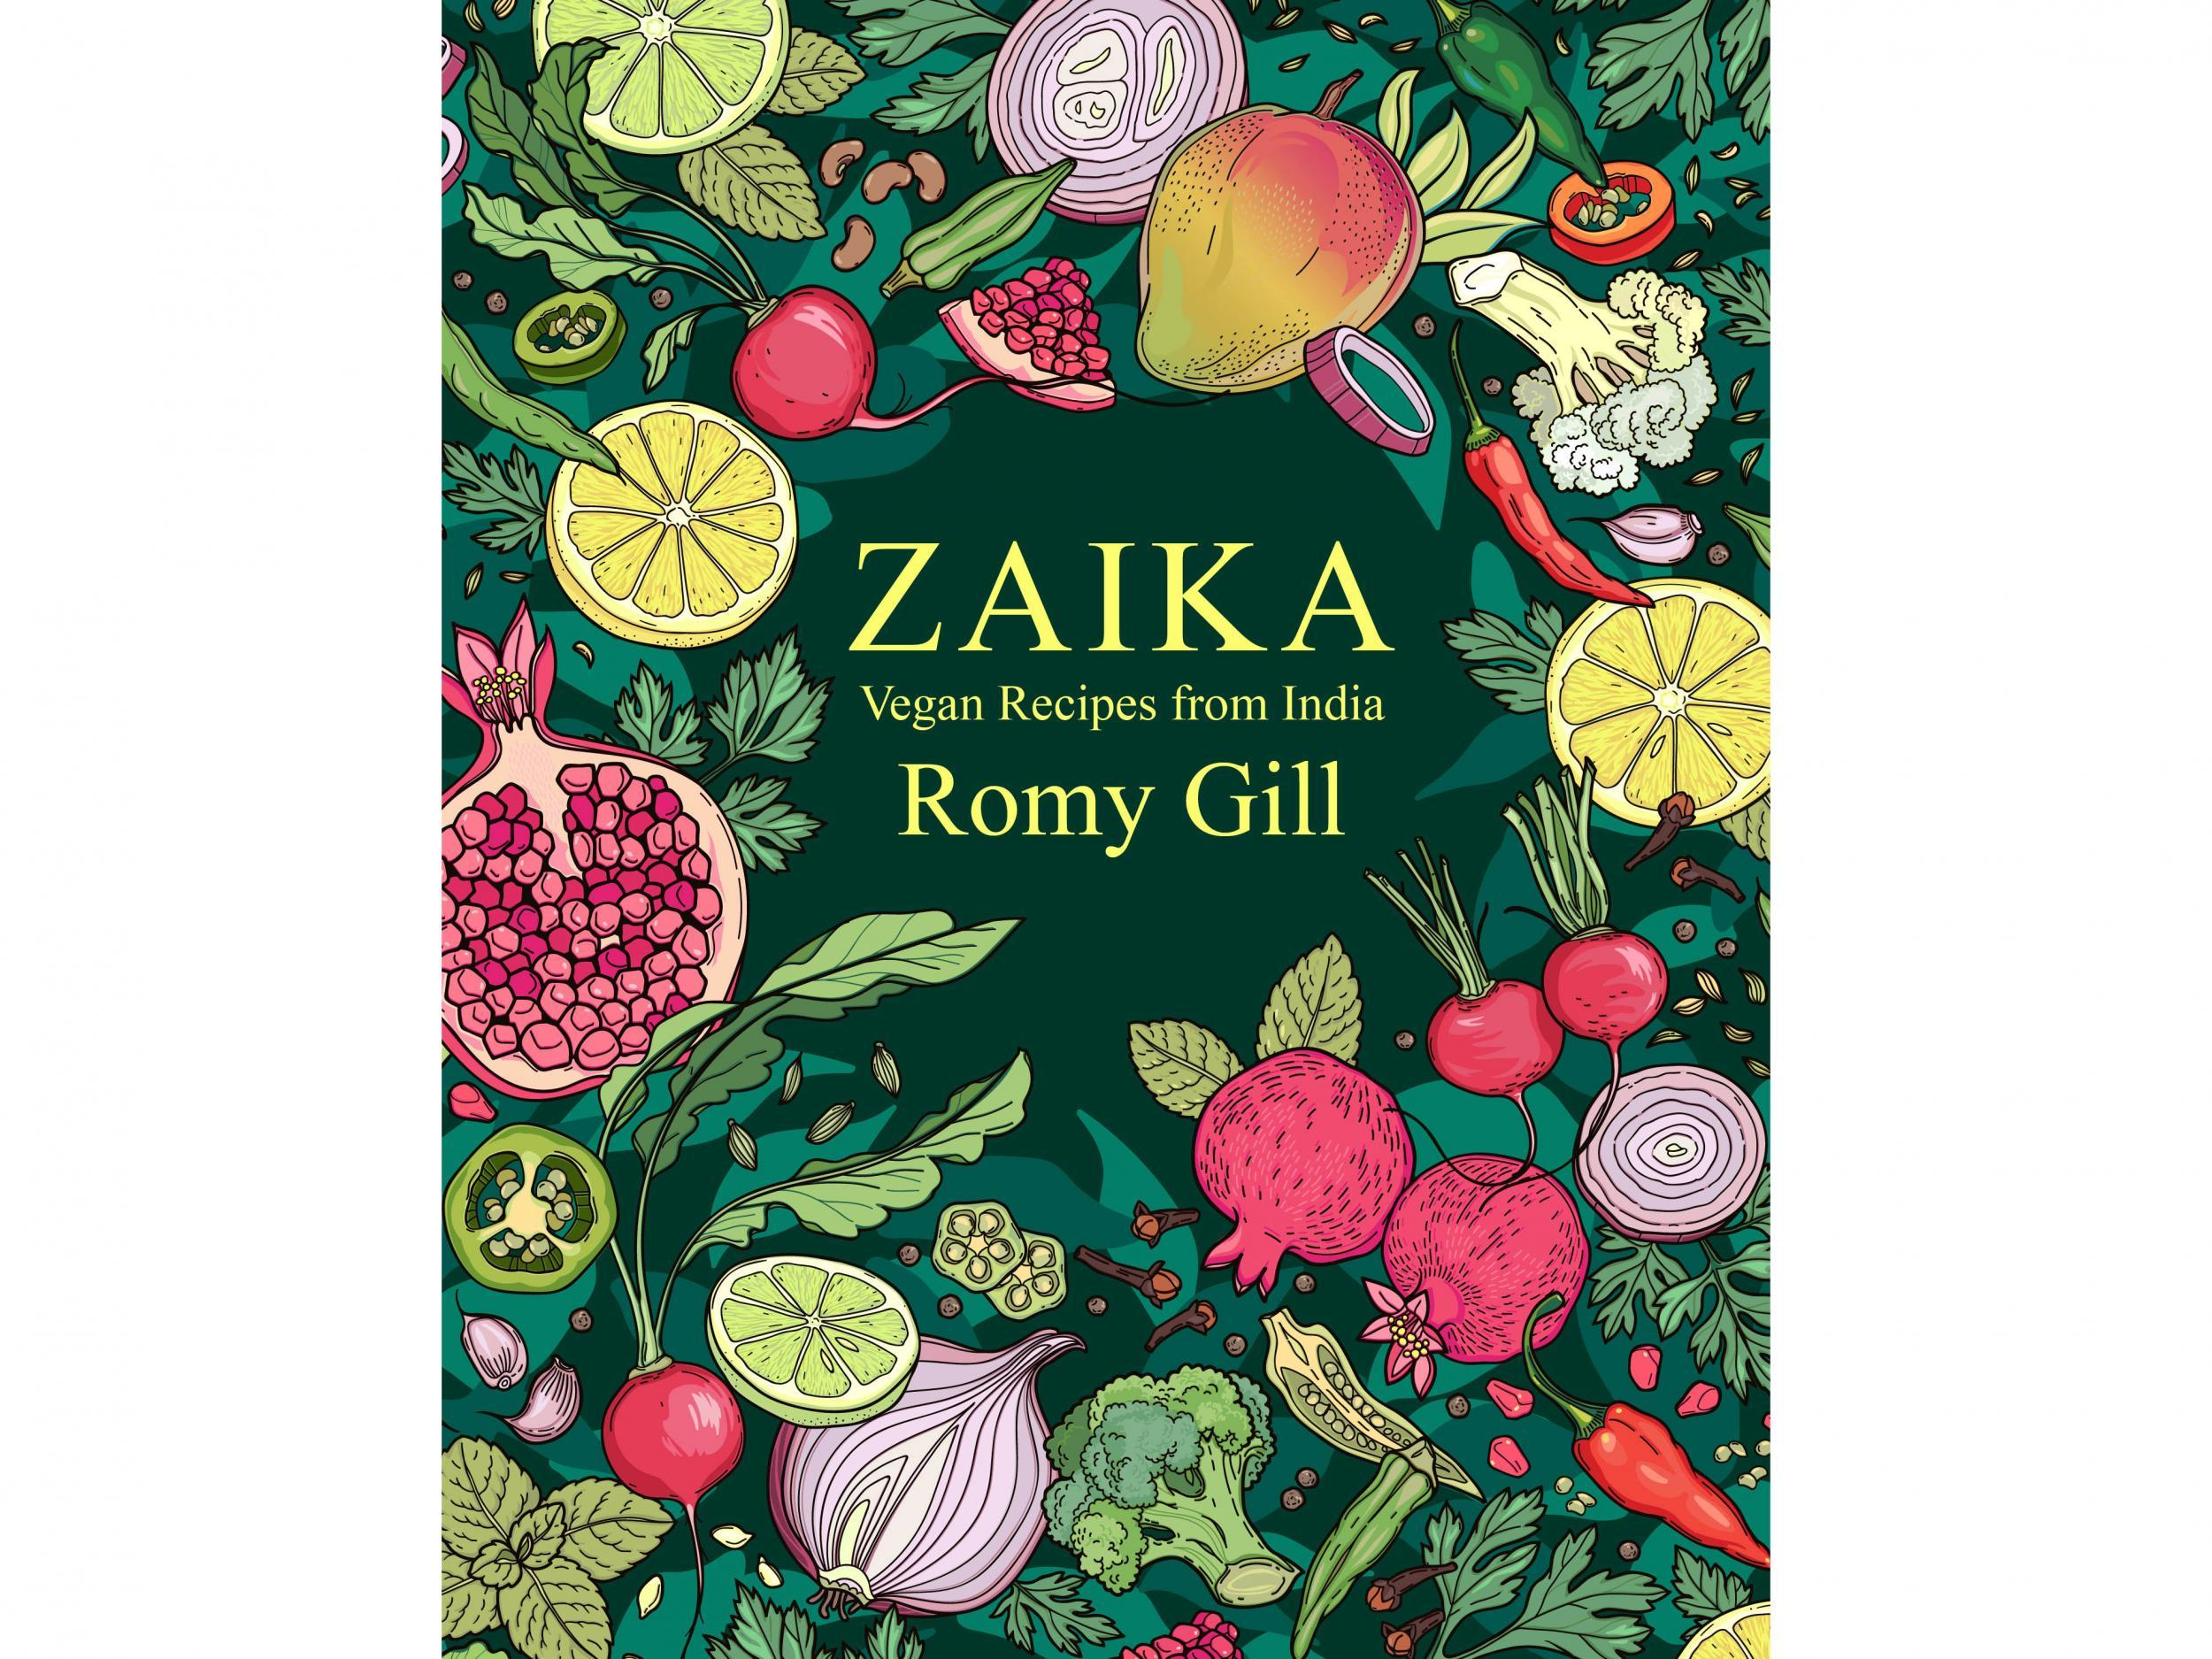 'Zaika: Vegan recipes from India' by Romy Gill. Published by Seven Dials : £10, Amazon